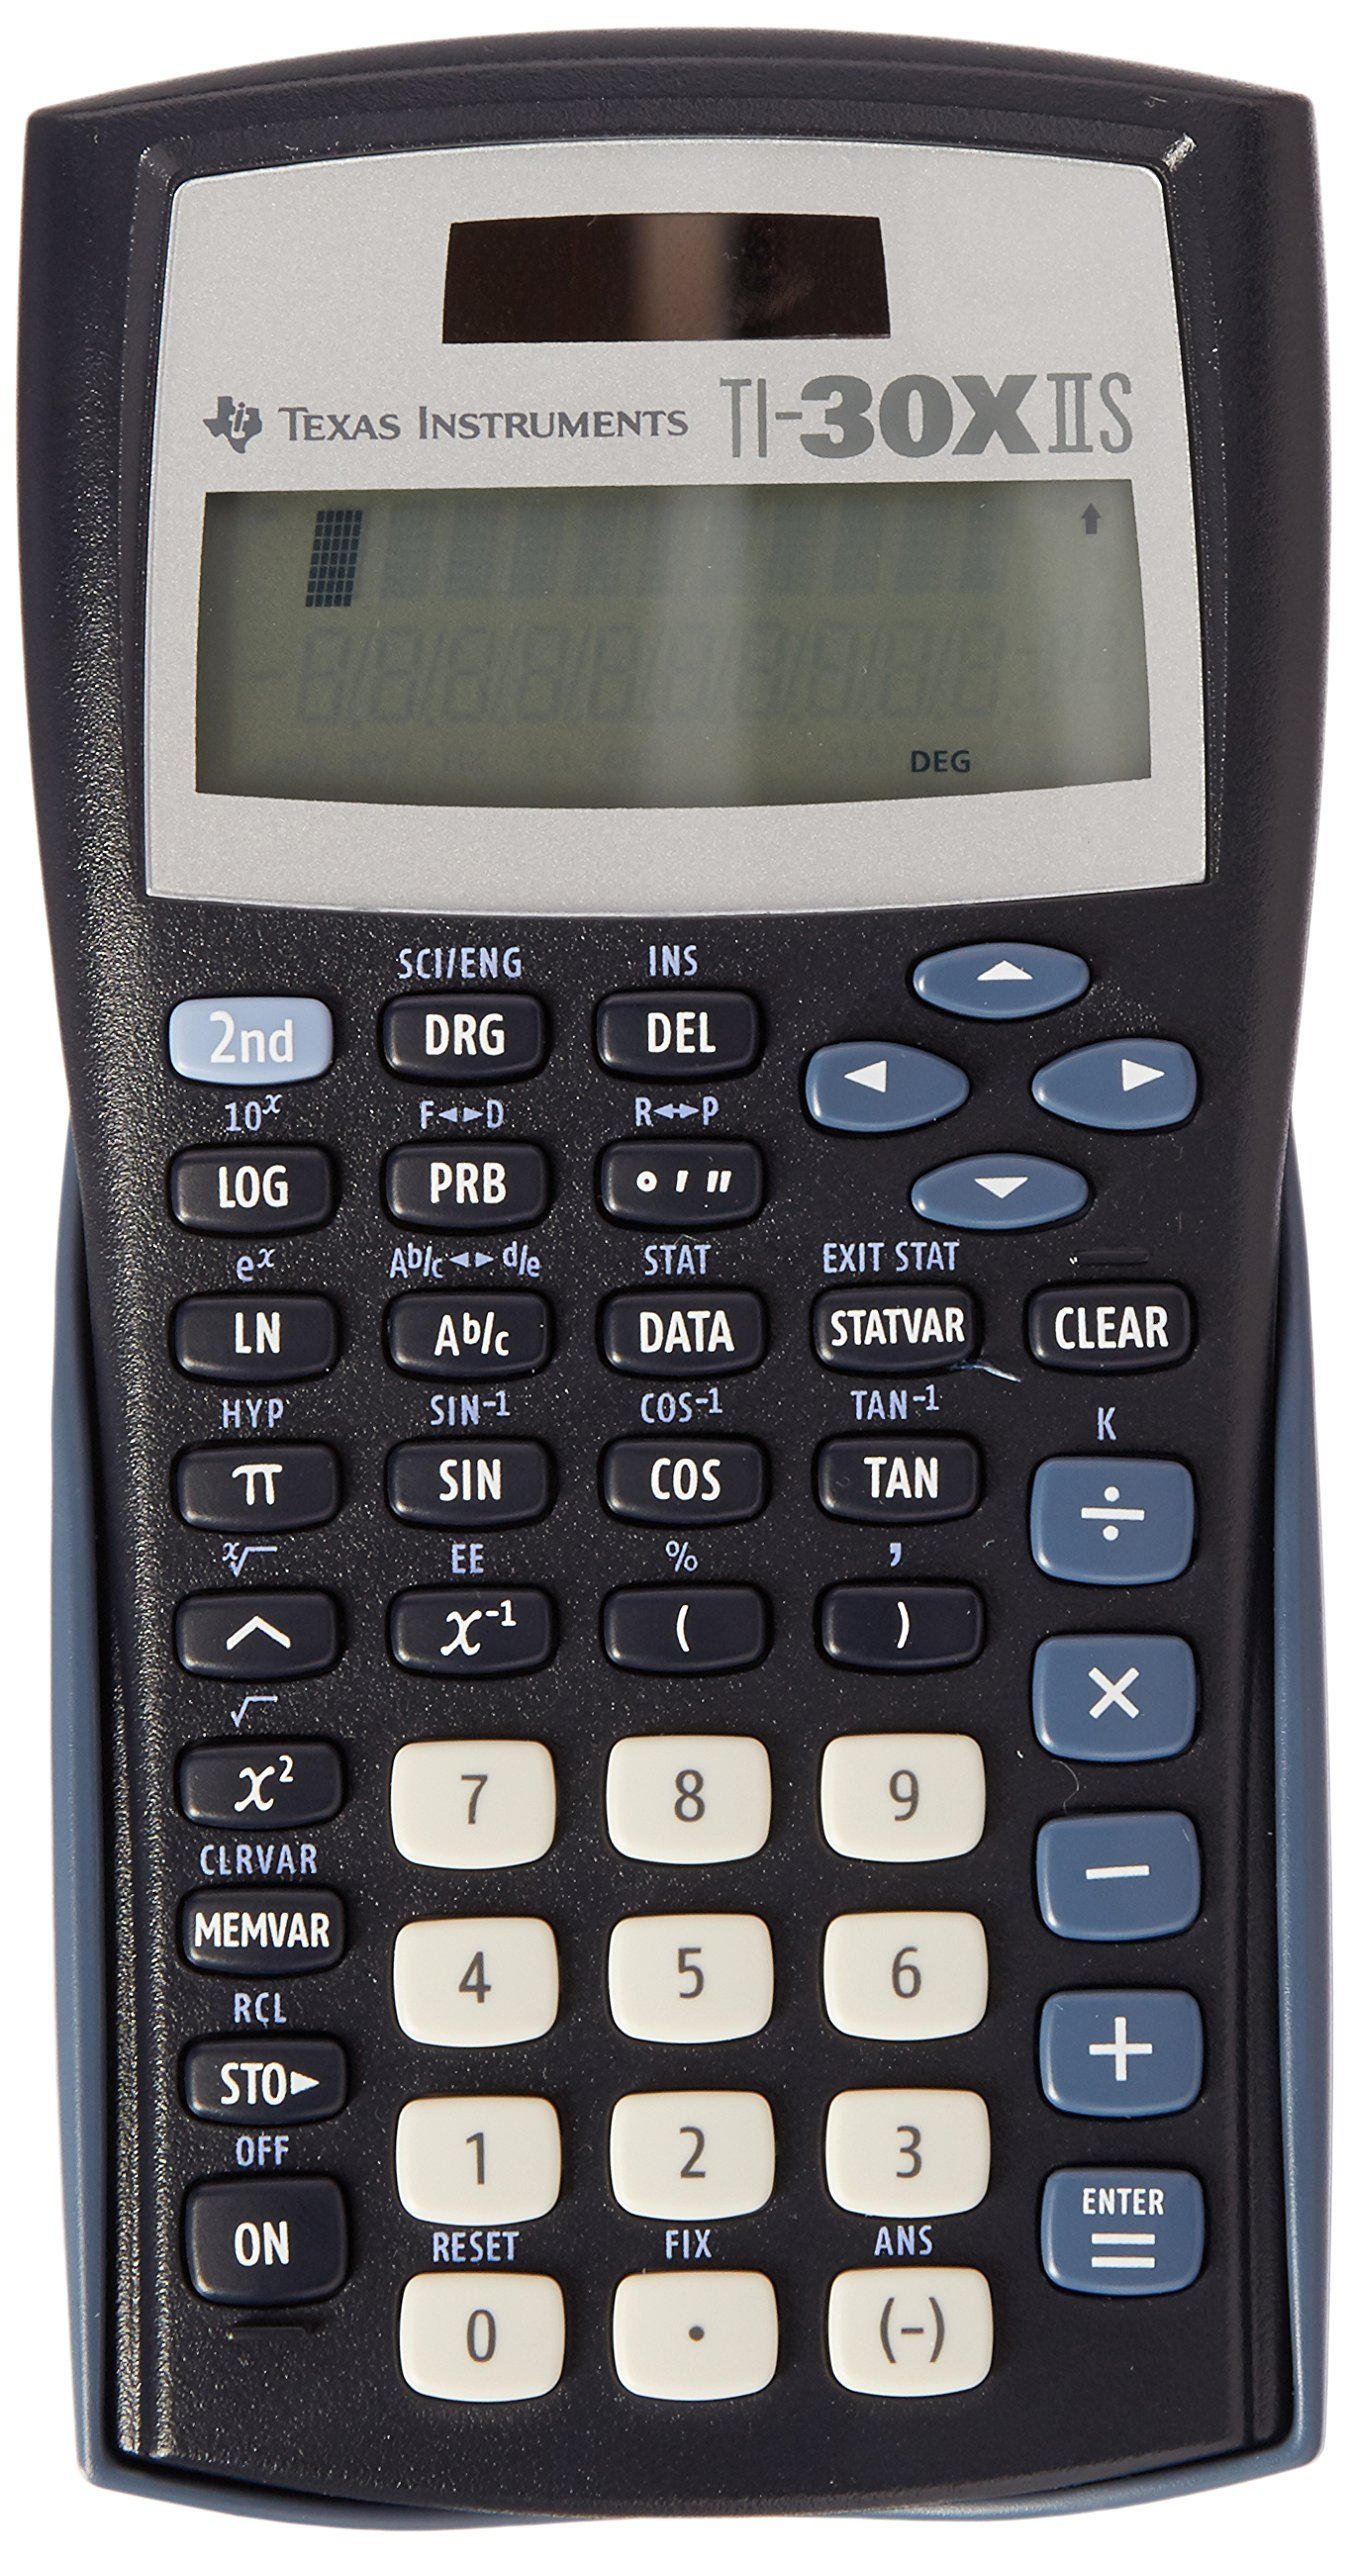 Texas Instruments 30XIIS/TKT Calculator Teachers Kit